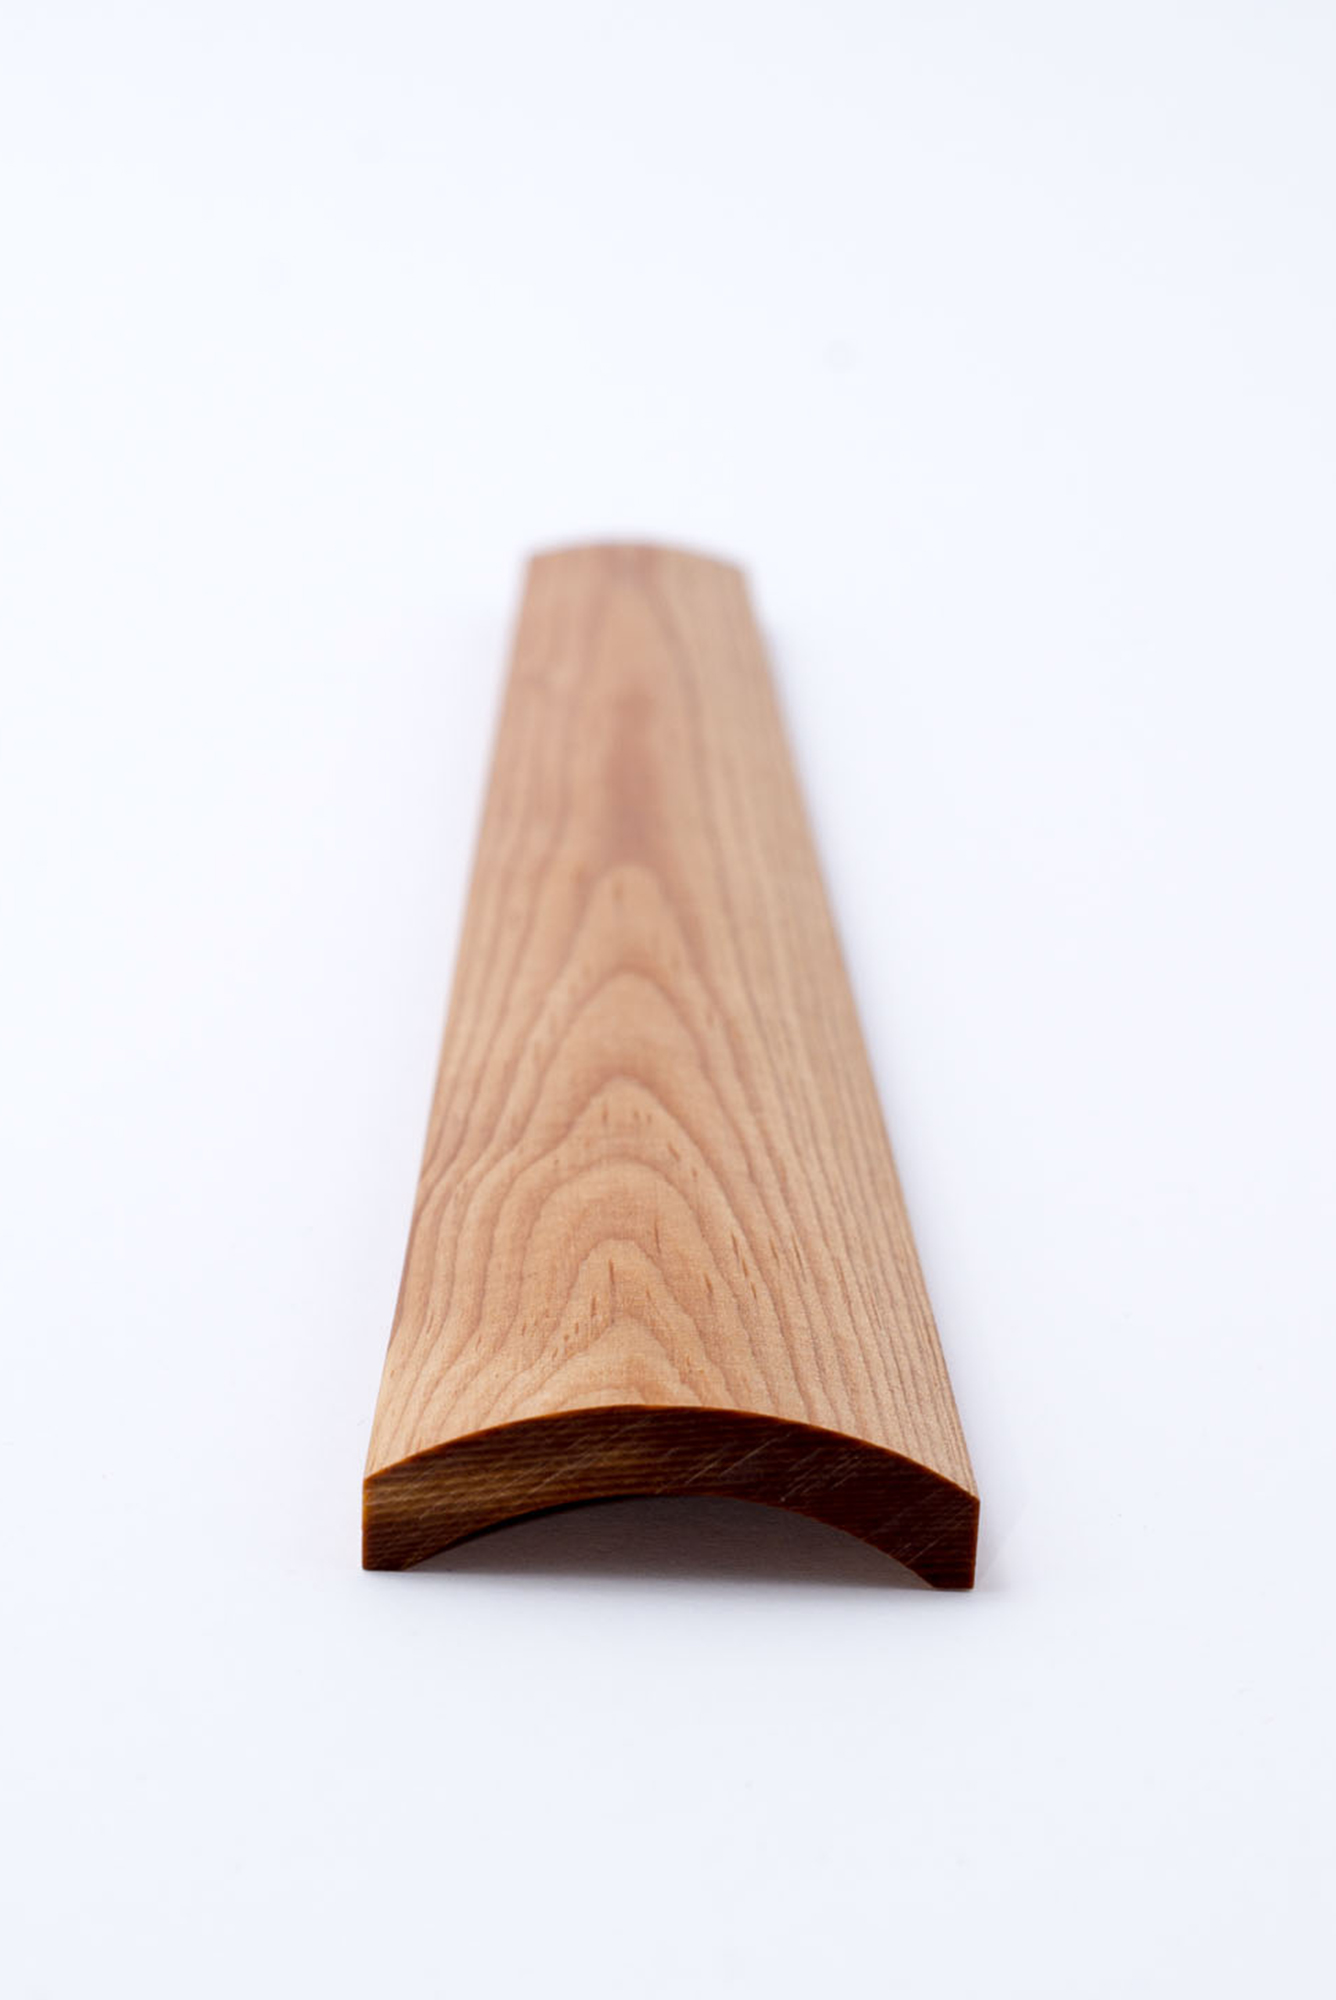 Fingerboard from Sonowood spruce